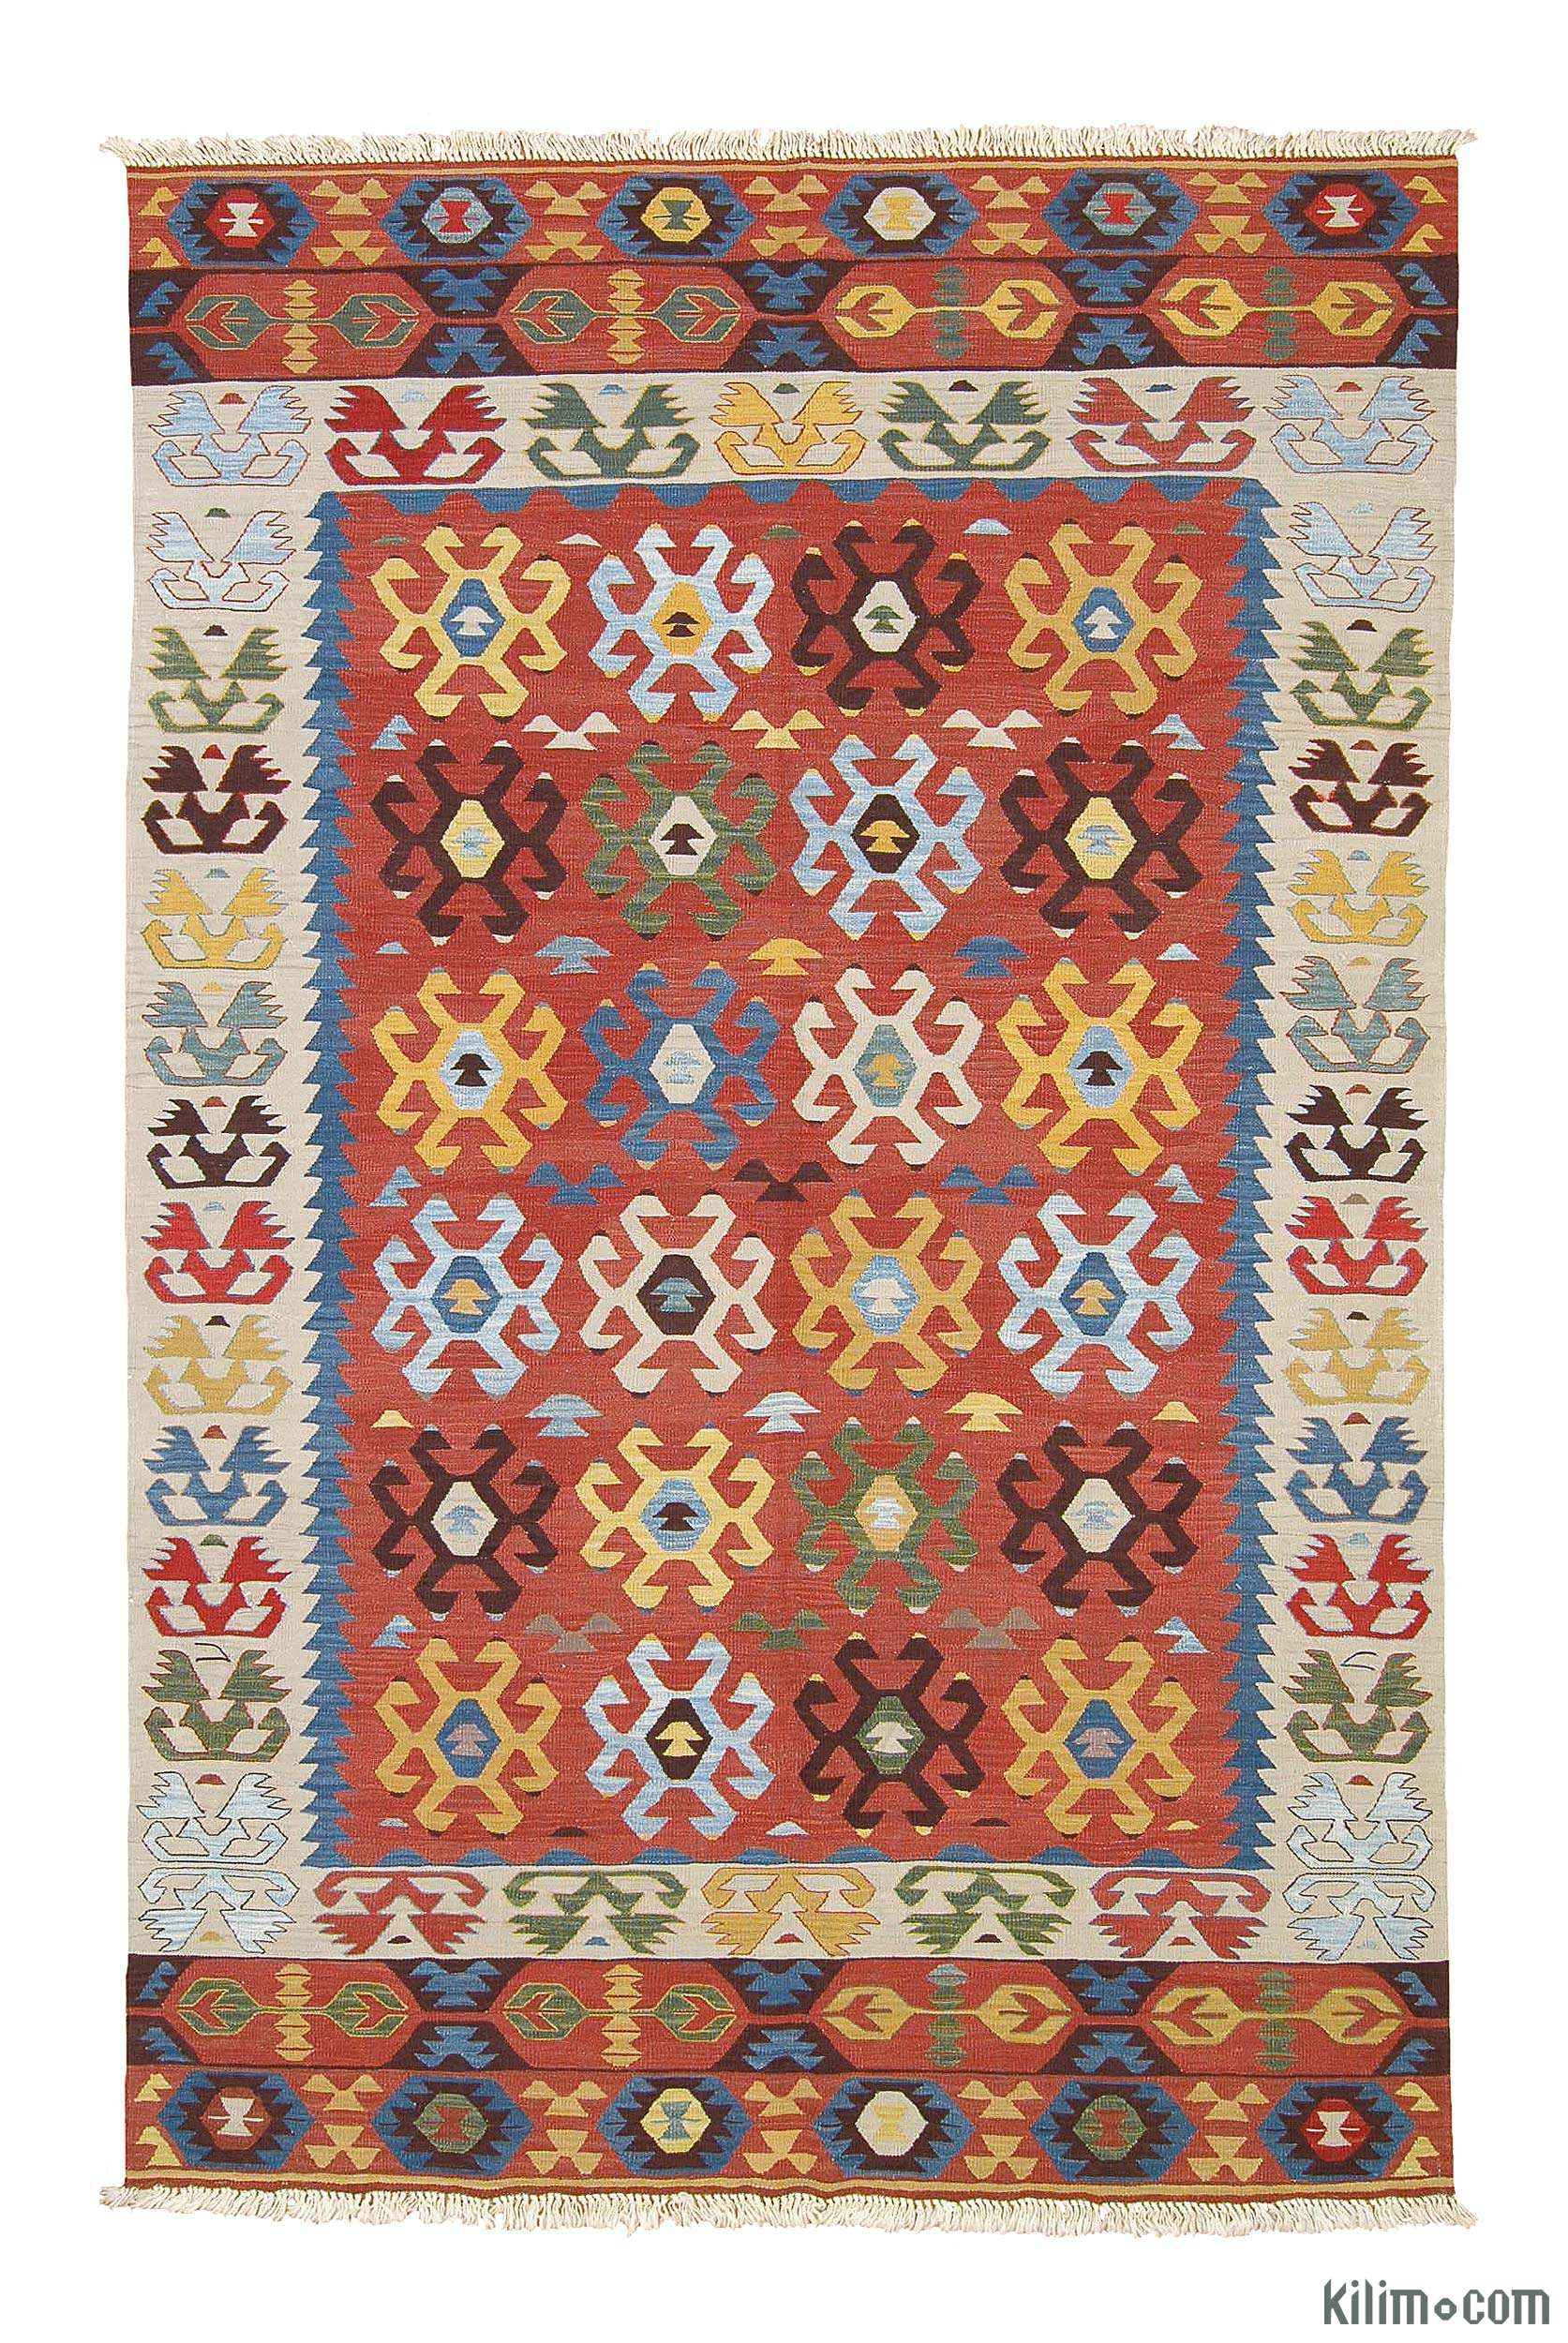 Rugs And Kilims Are The Master Elements Of Bohemian Style: K0003877 New Turkish Kilim Area Rug